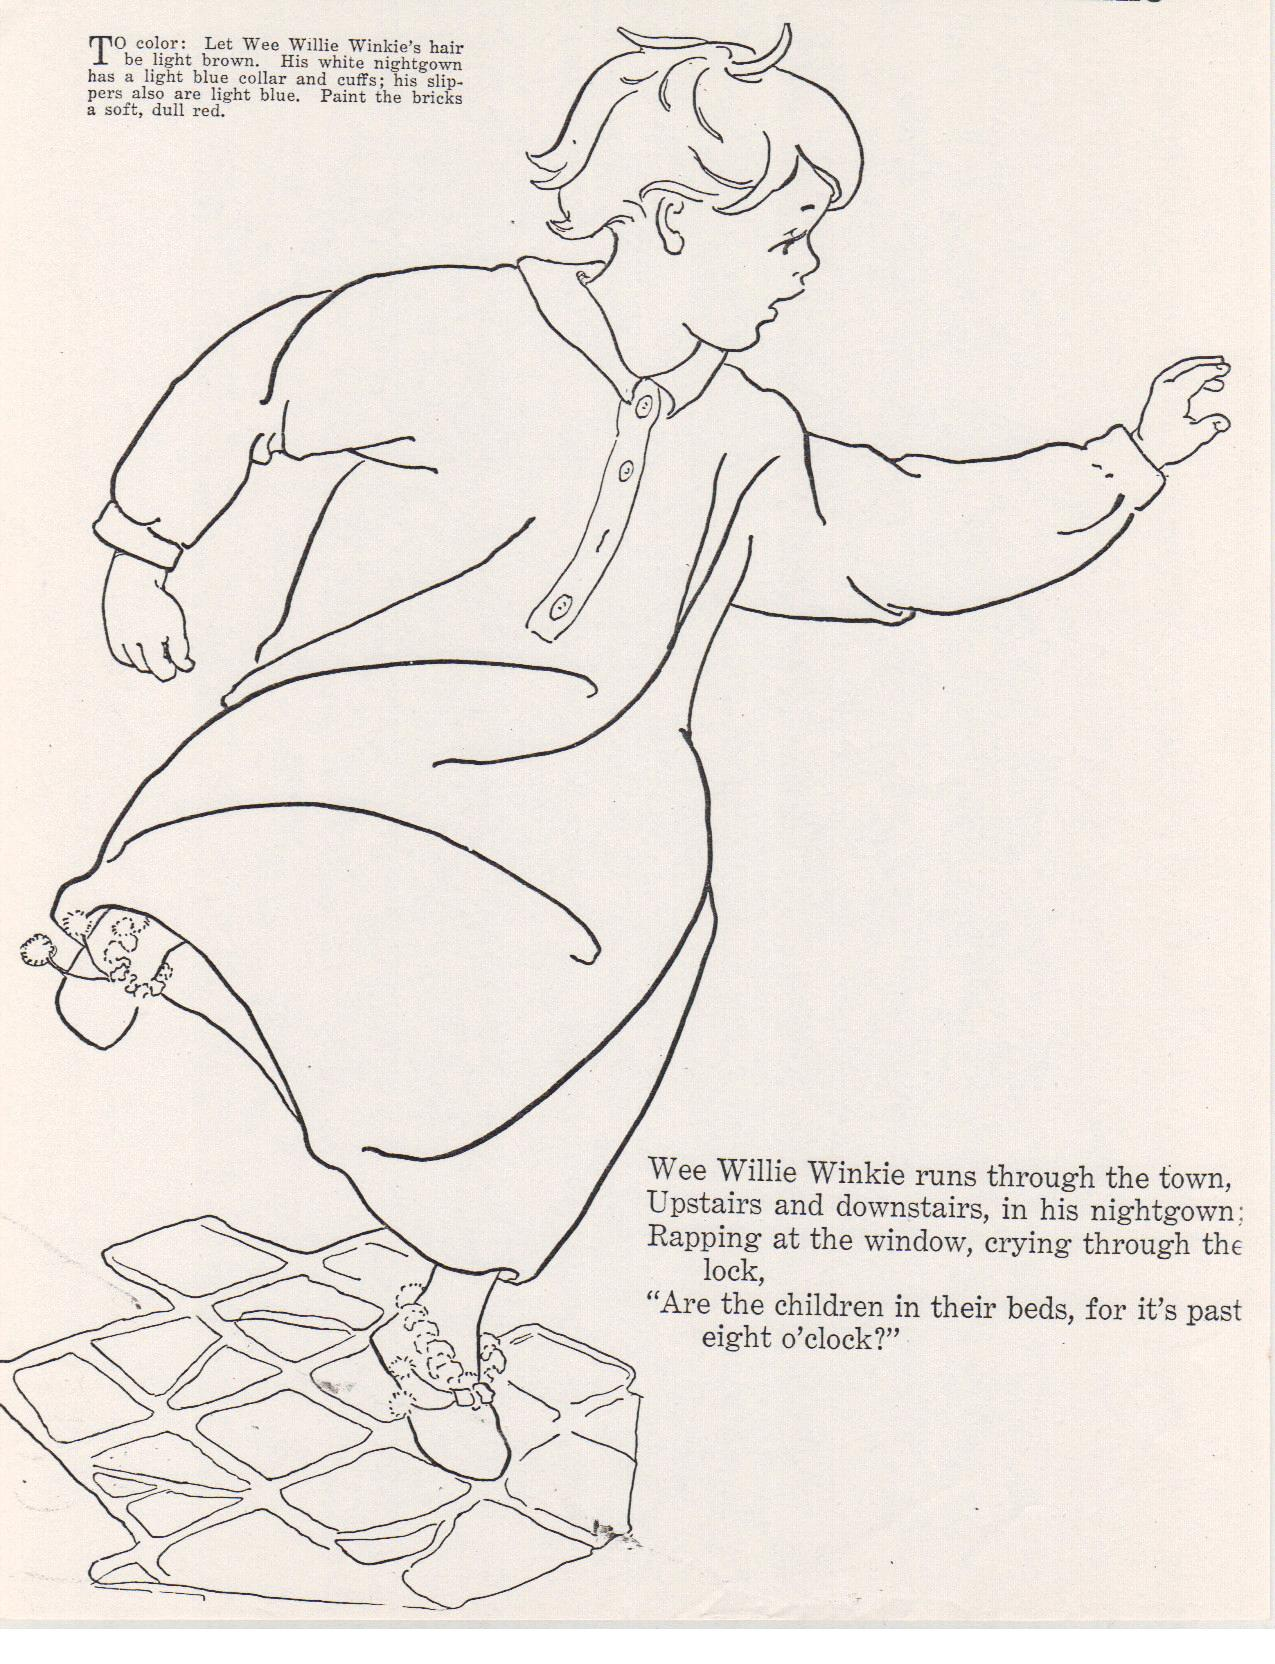 Wee Willie Winkie Coloring Page Click Here to Start Typing